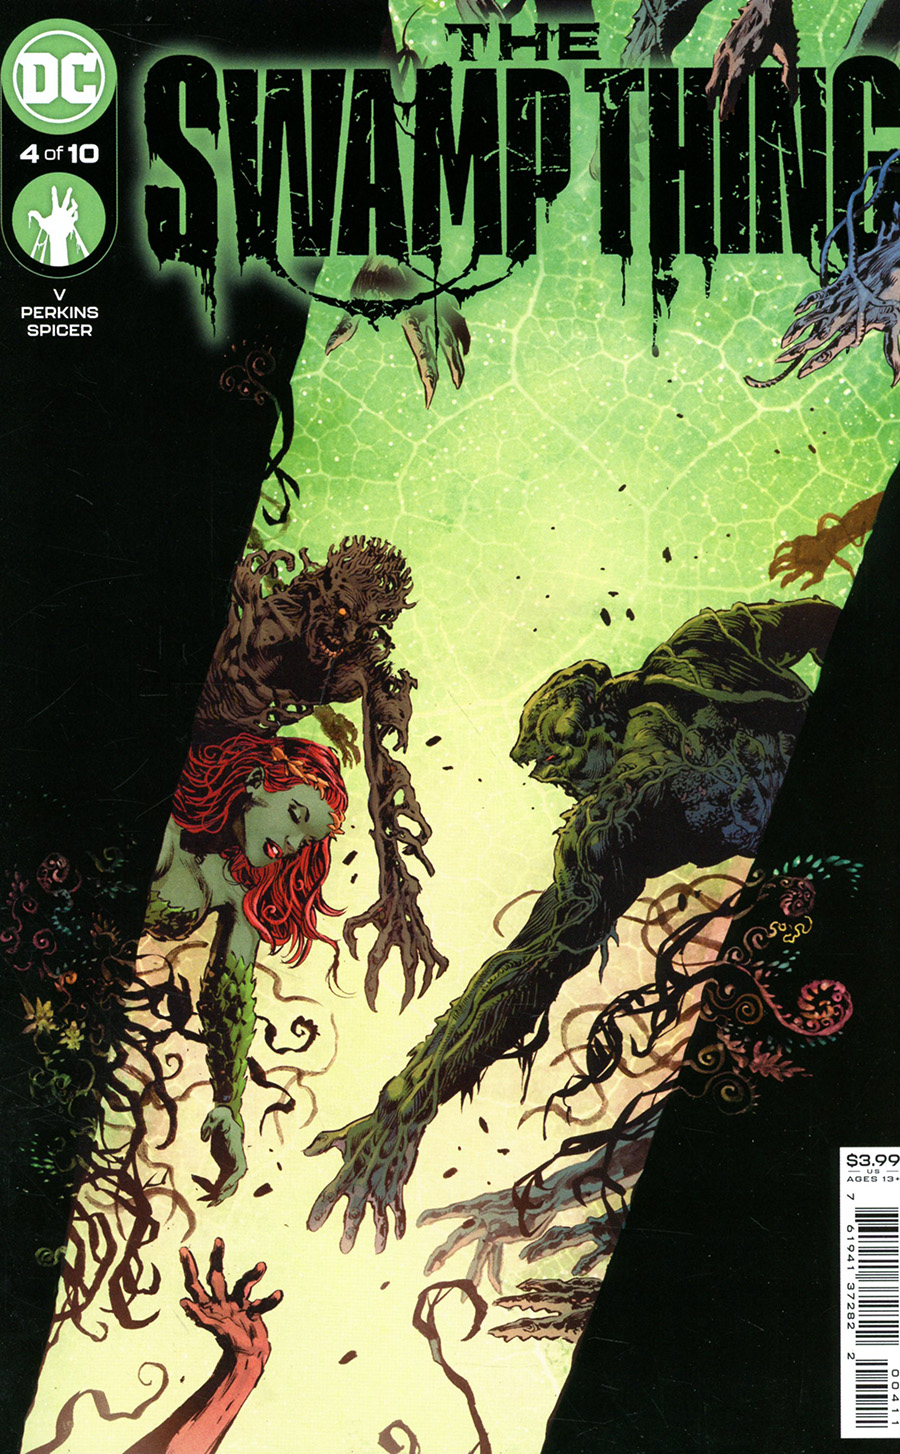 Swamp Thing Vol 7 #4 Cover A Regular Mike Perkins & Mike Spicer Cover